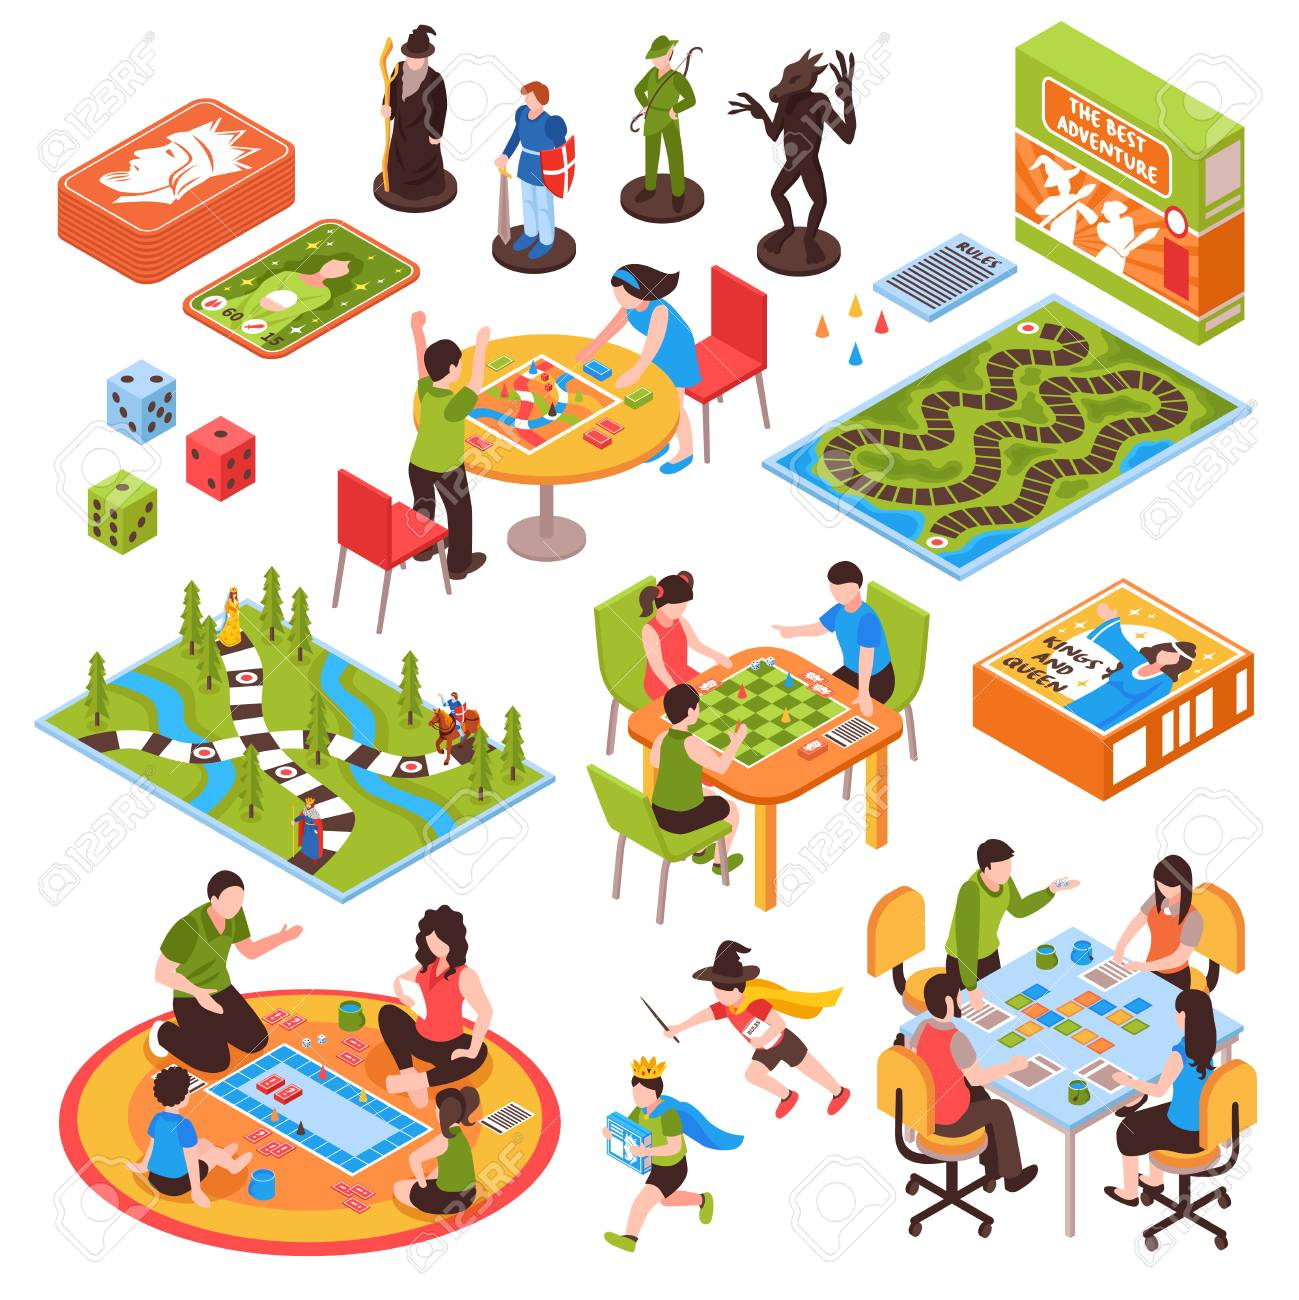 Set of isometric icons with people including adults and kids playing board games isolated vector illustration - 96609906